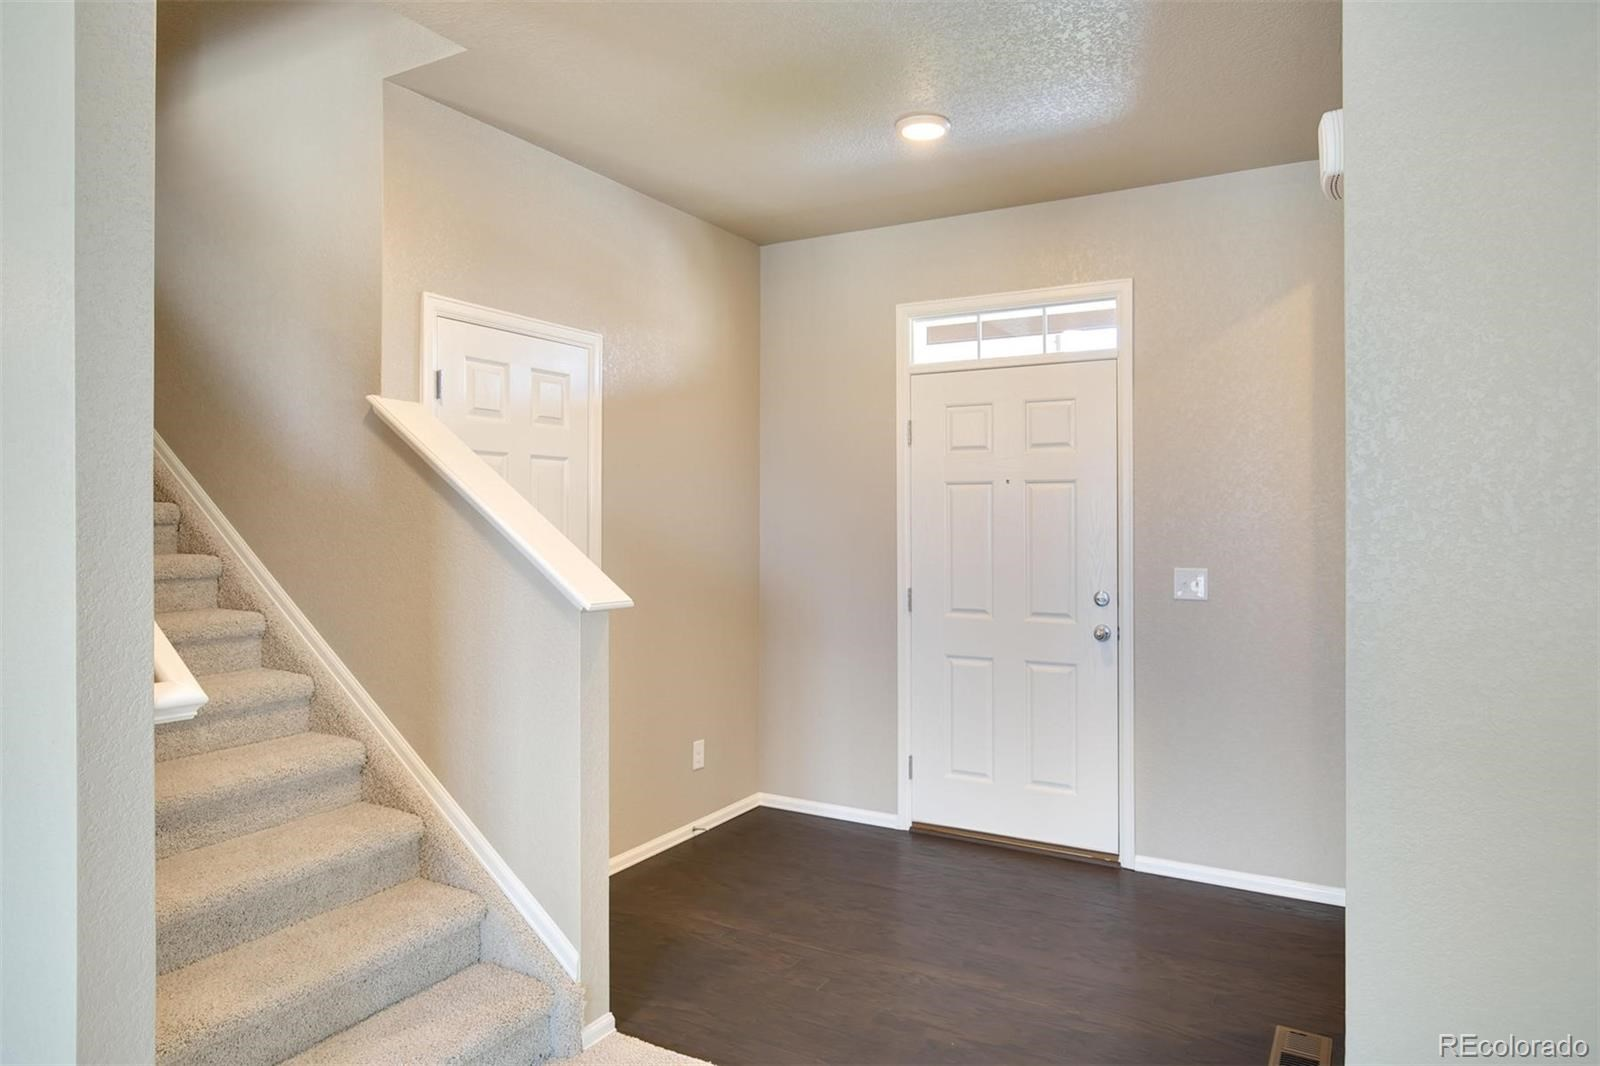 MLS# 4867430 - 2 - 915 Camberly Drive, Windsor, CO 80550